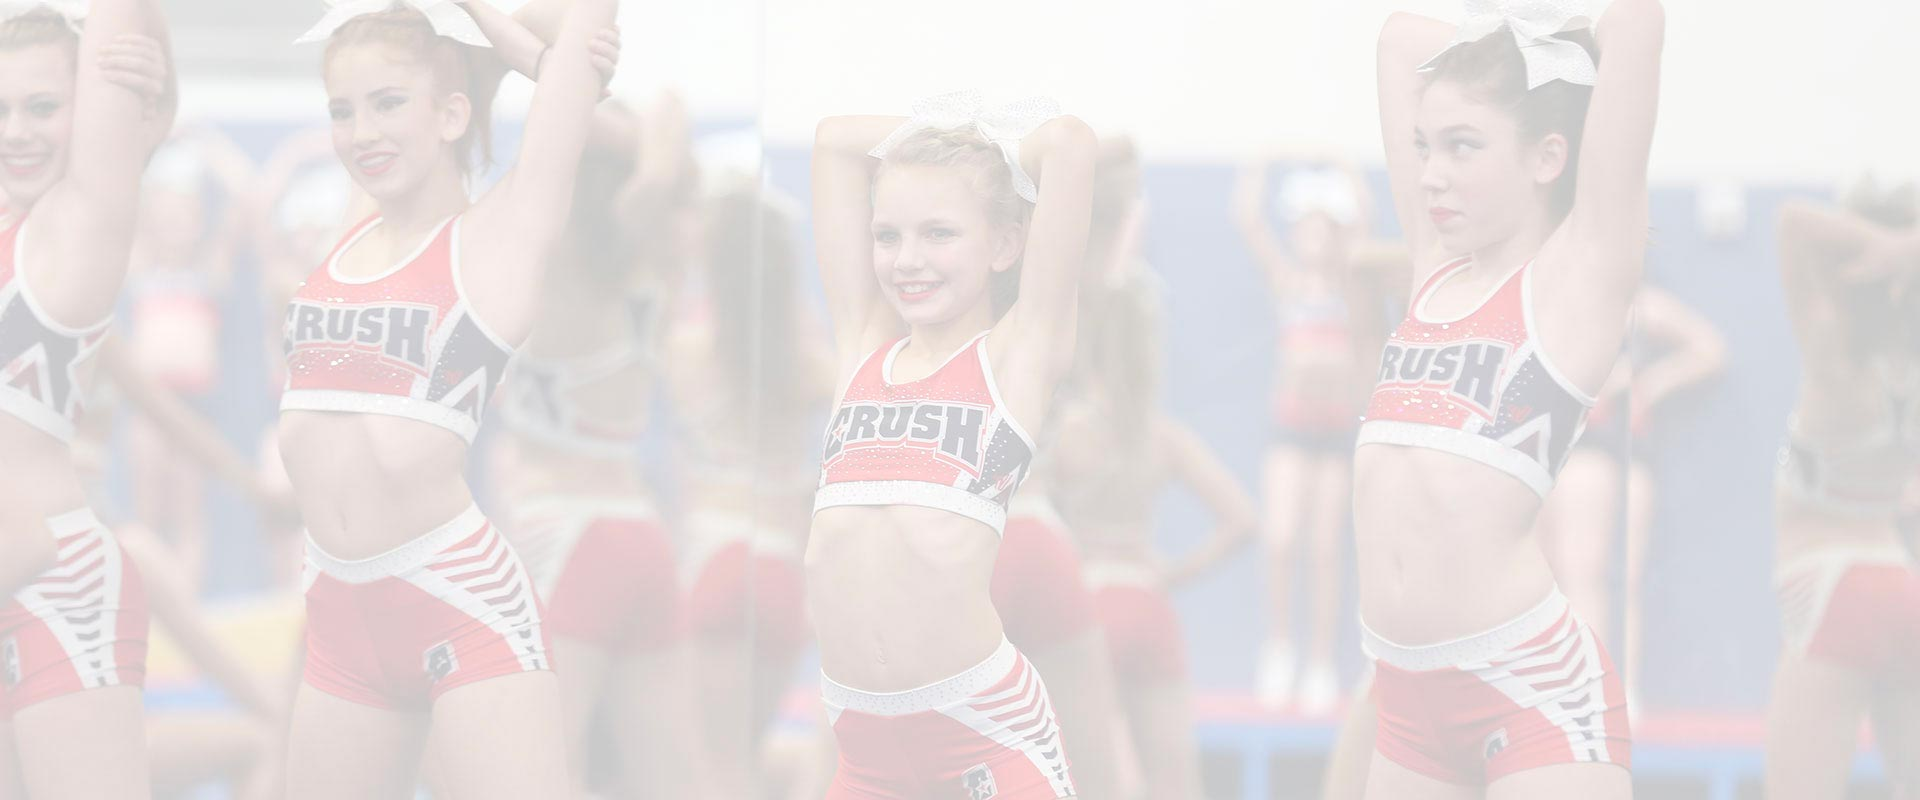 Crush Cheer is dedicated to creating an inspiring, encouraging, and nurturing environment.